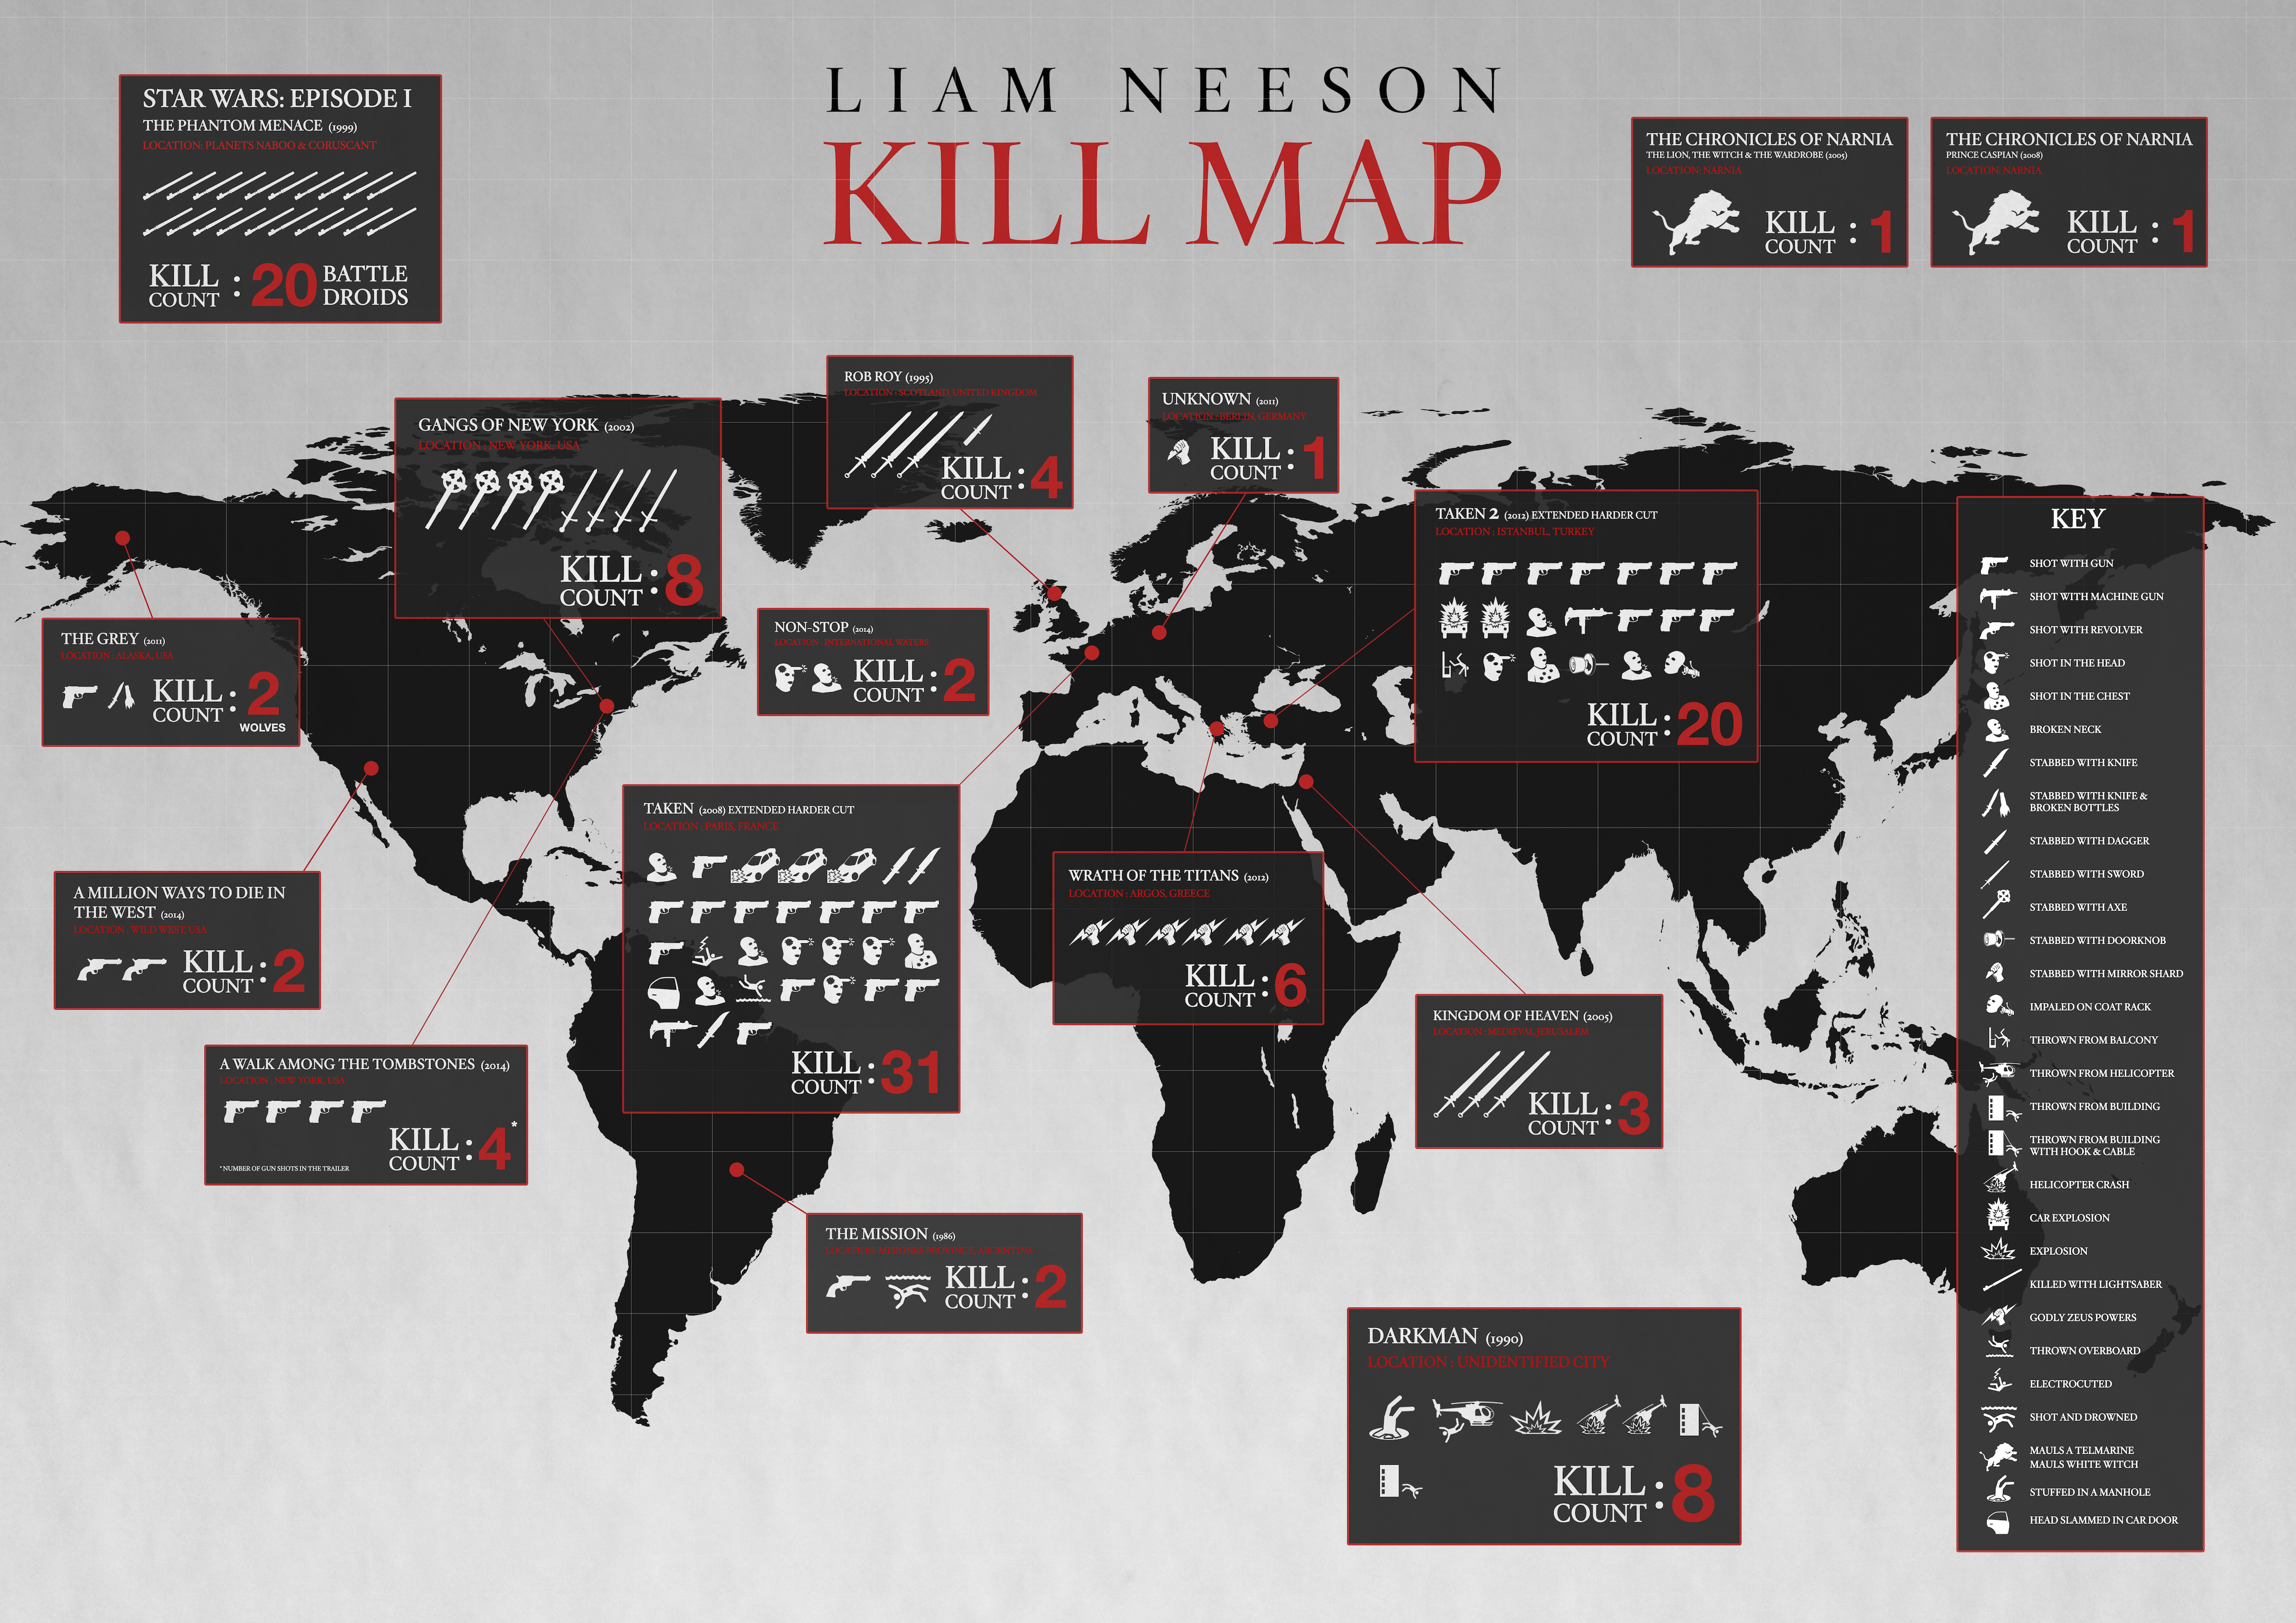 overview of kills by Liam Neeson in sixteen movies